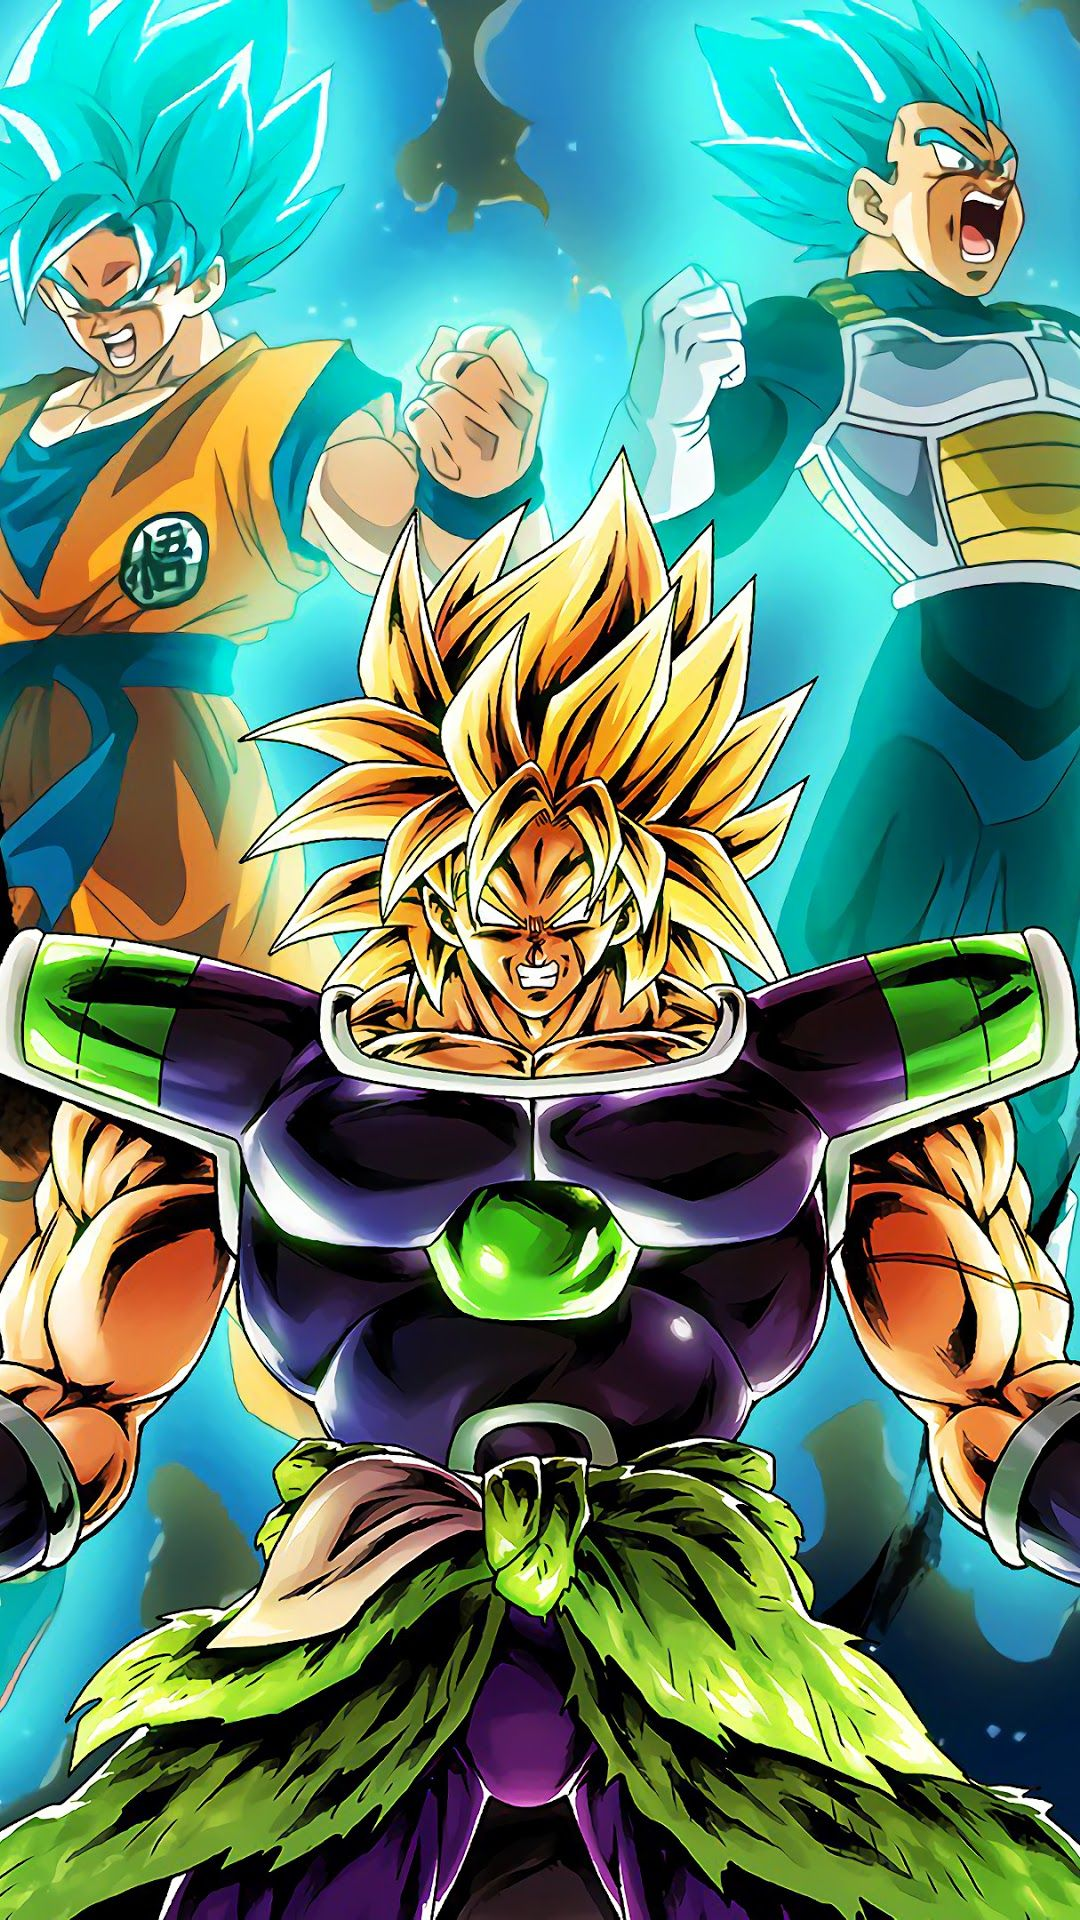 Dragon Ball Super Broly Wallpaper Hd Iphone Broly Vegeta